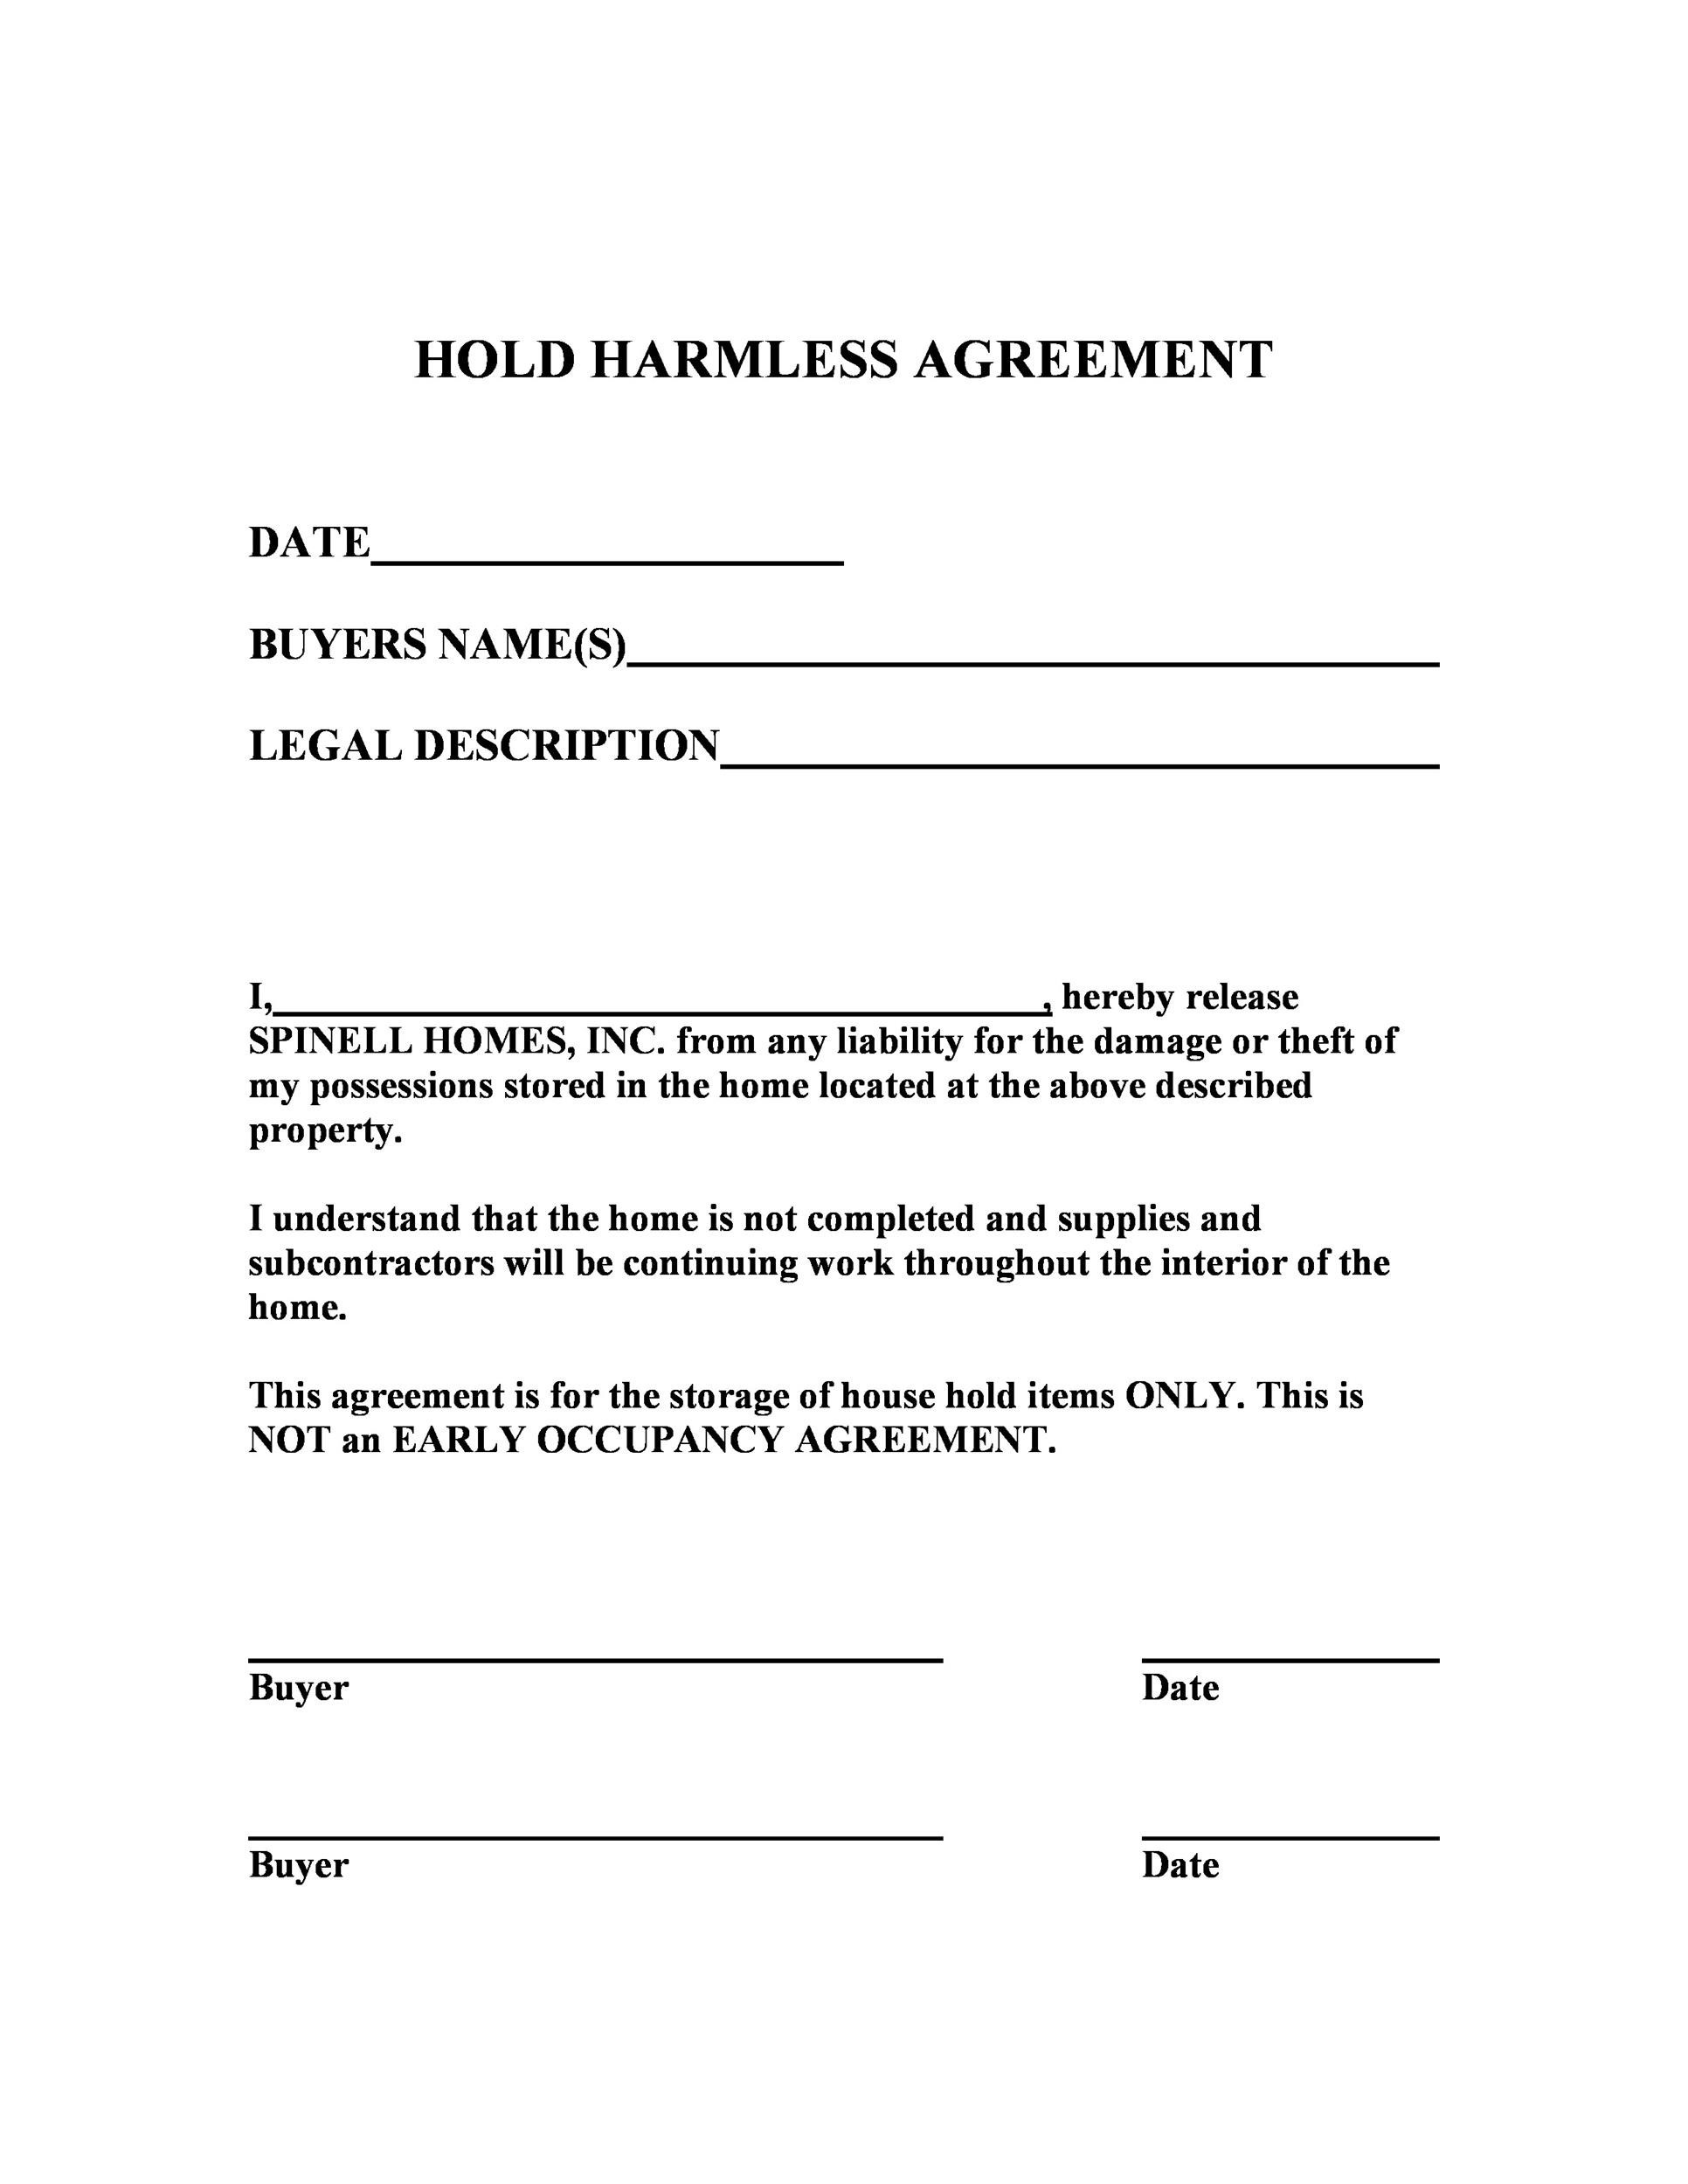 Doc407527 How to Write a Contract Agreement Between Two People – Contract Between Two People